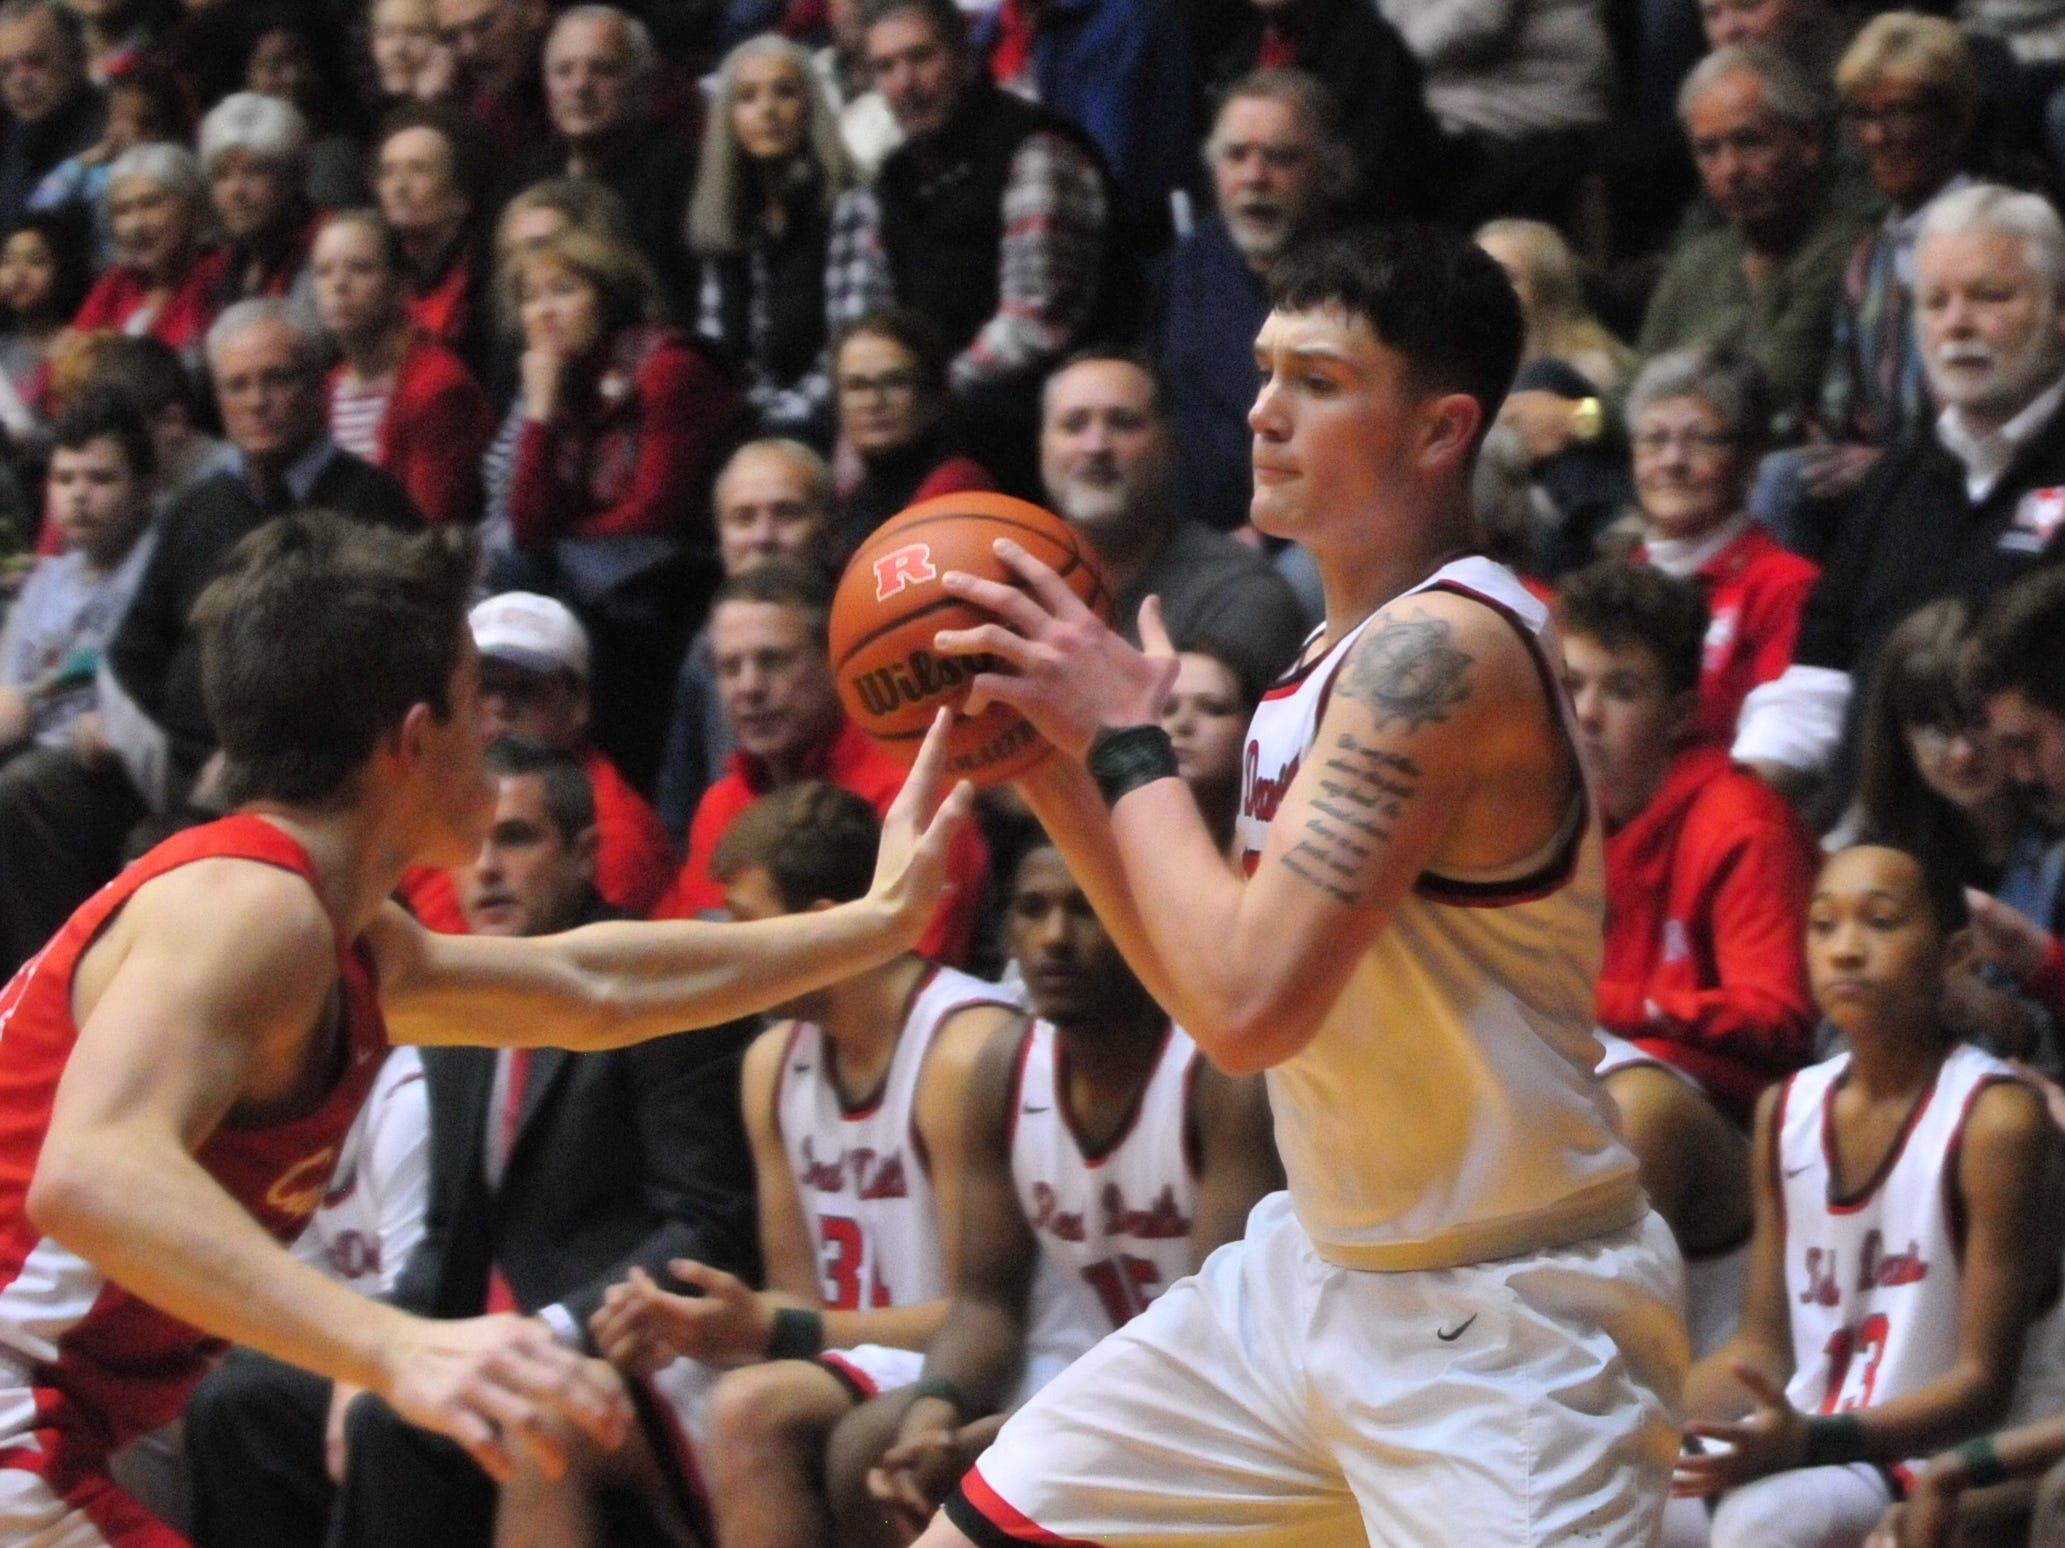 Lucas Kroft moves the ball during Saturday's 42-39 boys basketball loss to Connersville Dec. 15, 2018 at Tiernan Center.